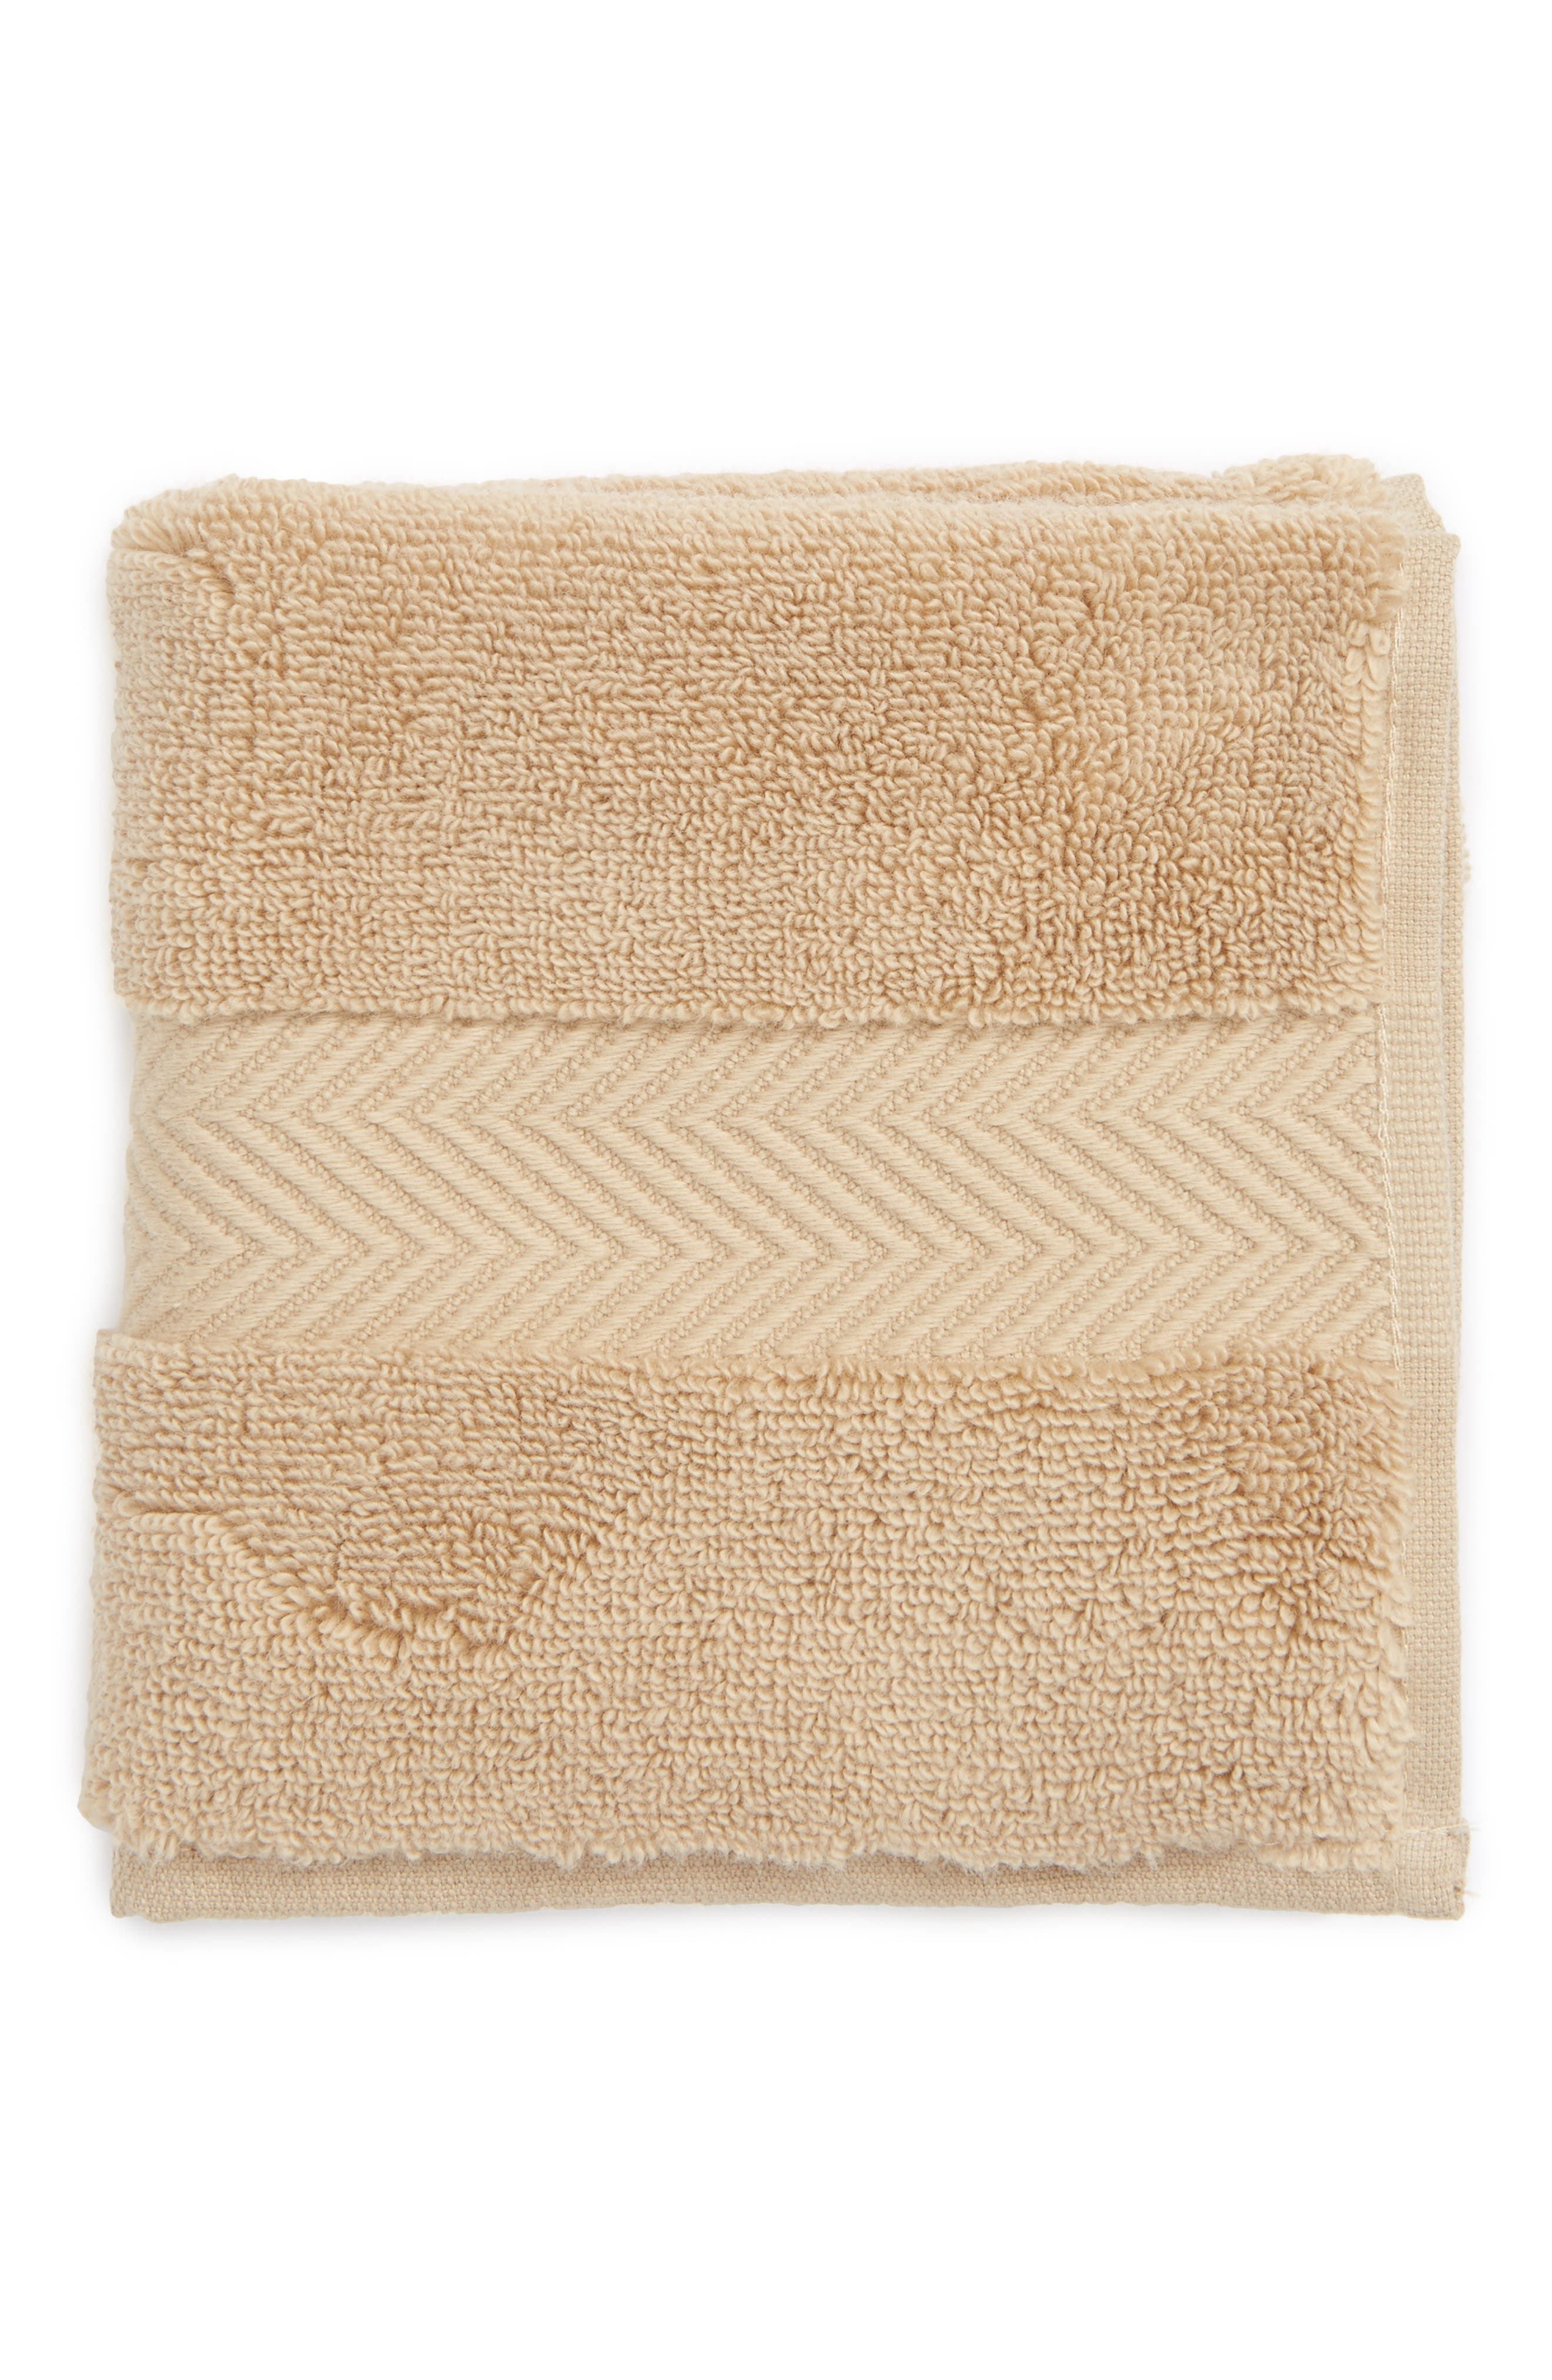 Nordstrom at Home Hydrocotton Washcloth